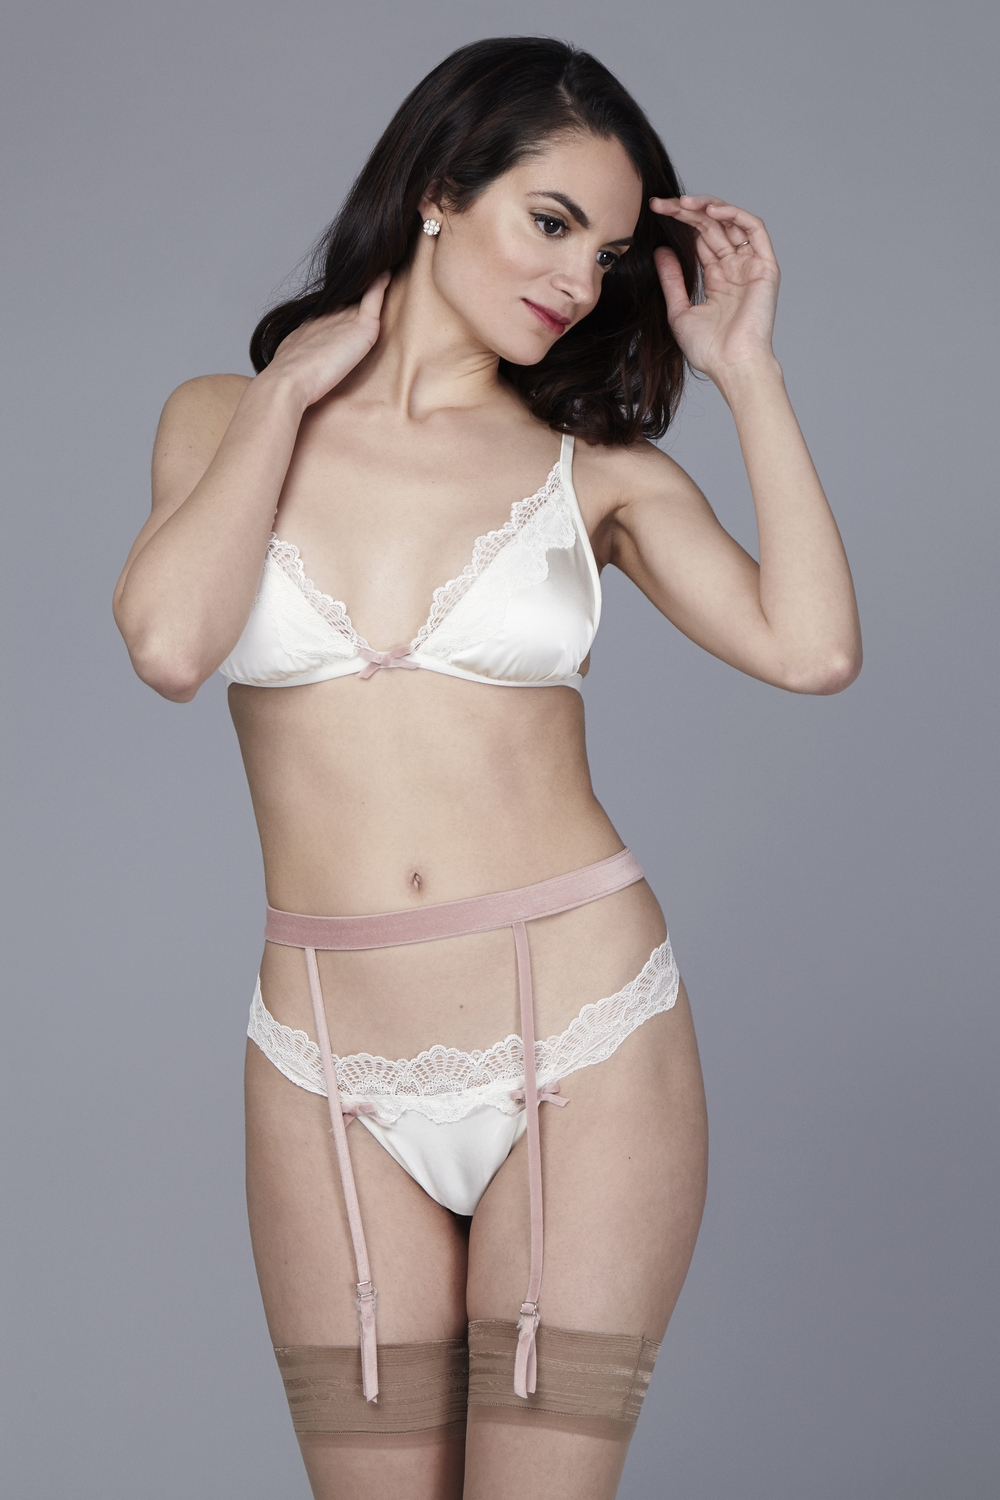 tn_Kat Bralette and Thong_Ivory_Grace Garter Belt_Blush_The Giving Bride.jpg